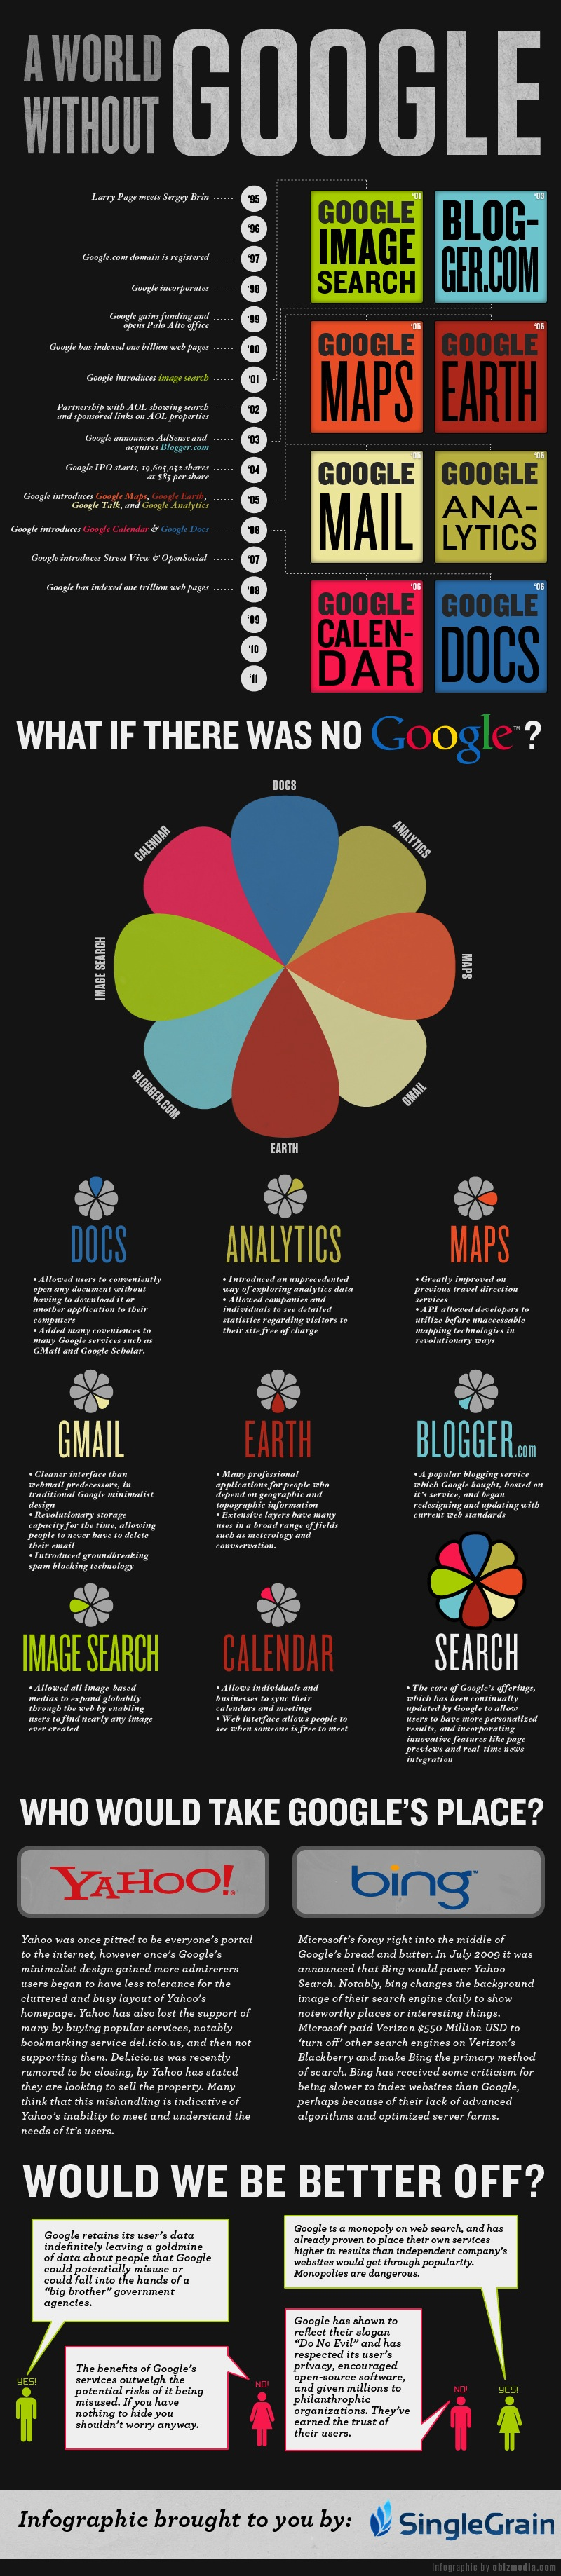 What Would Happen: A World Without Google [Infographic]